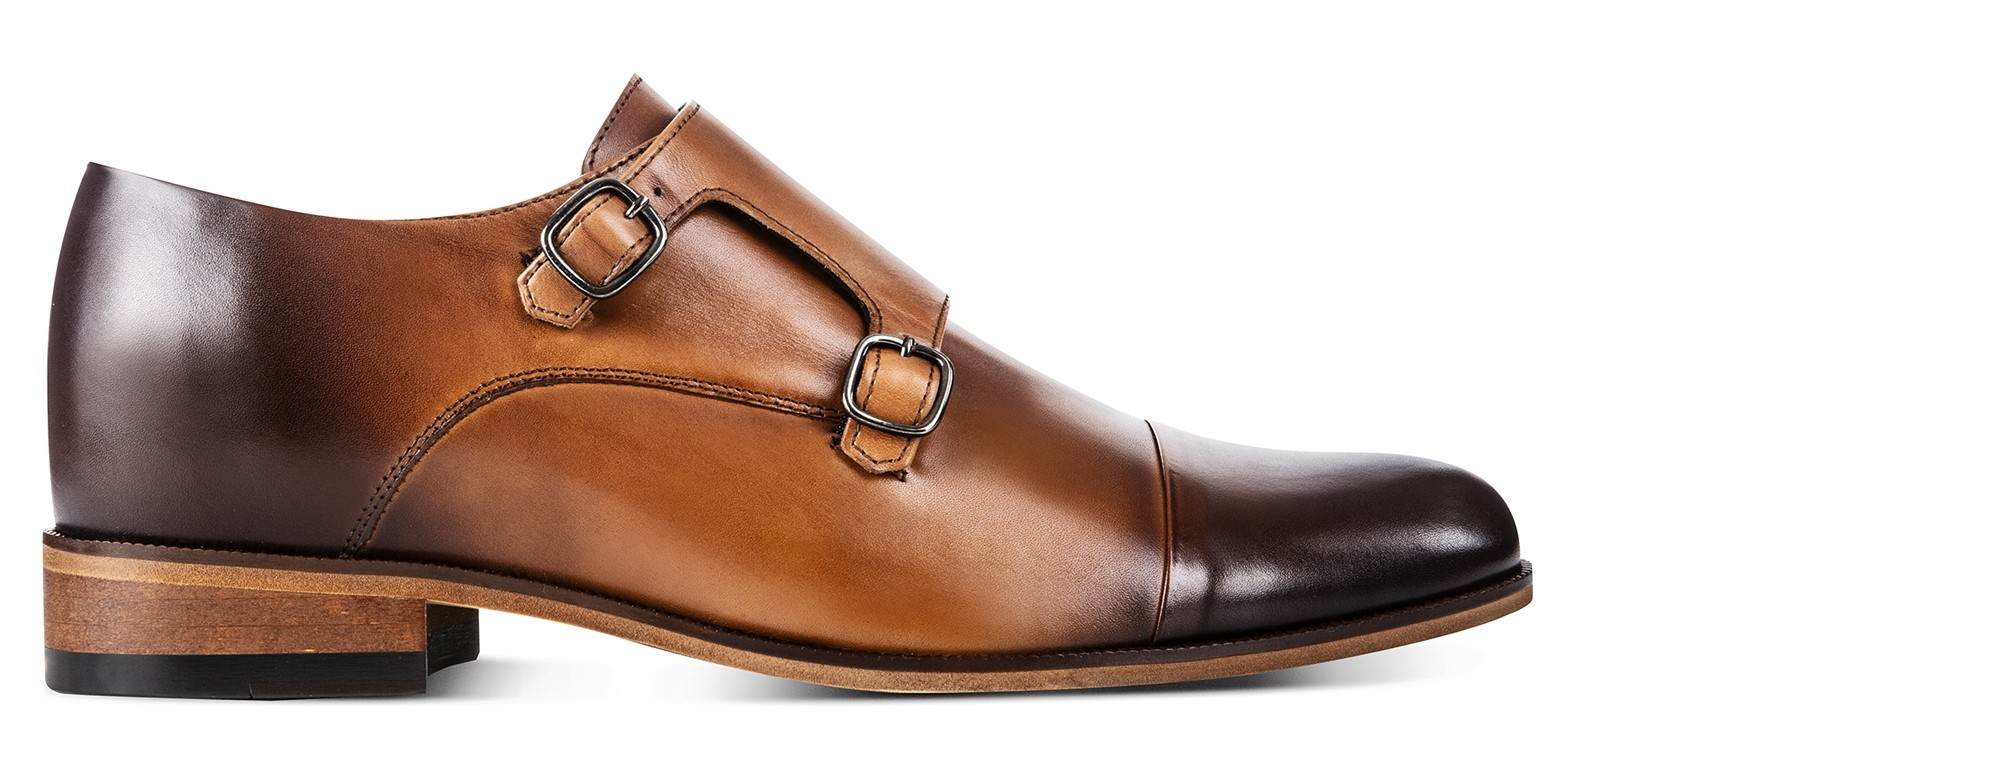 GM7 chaussures rehaussantes